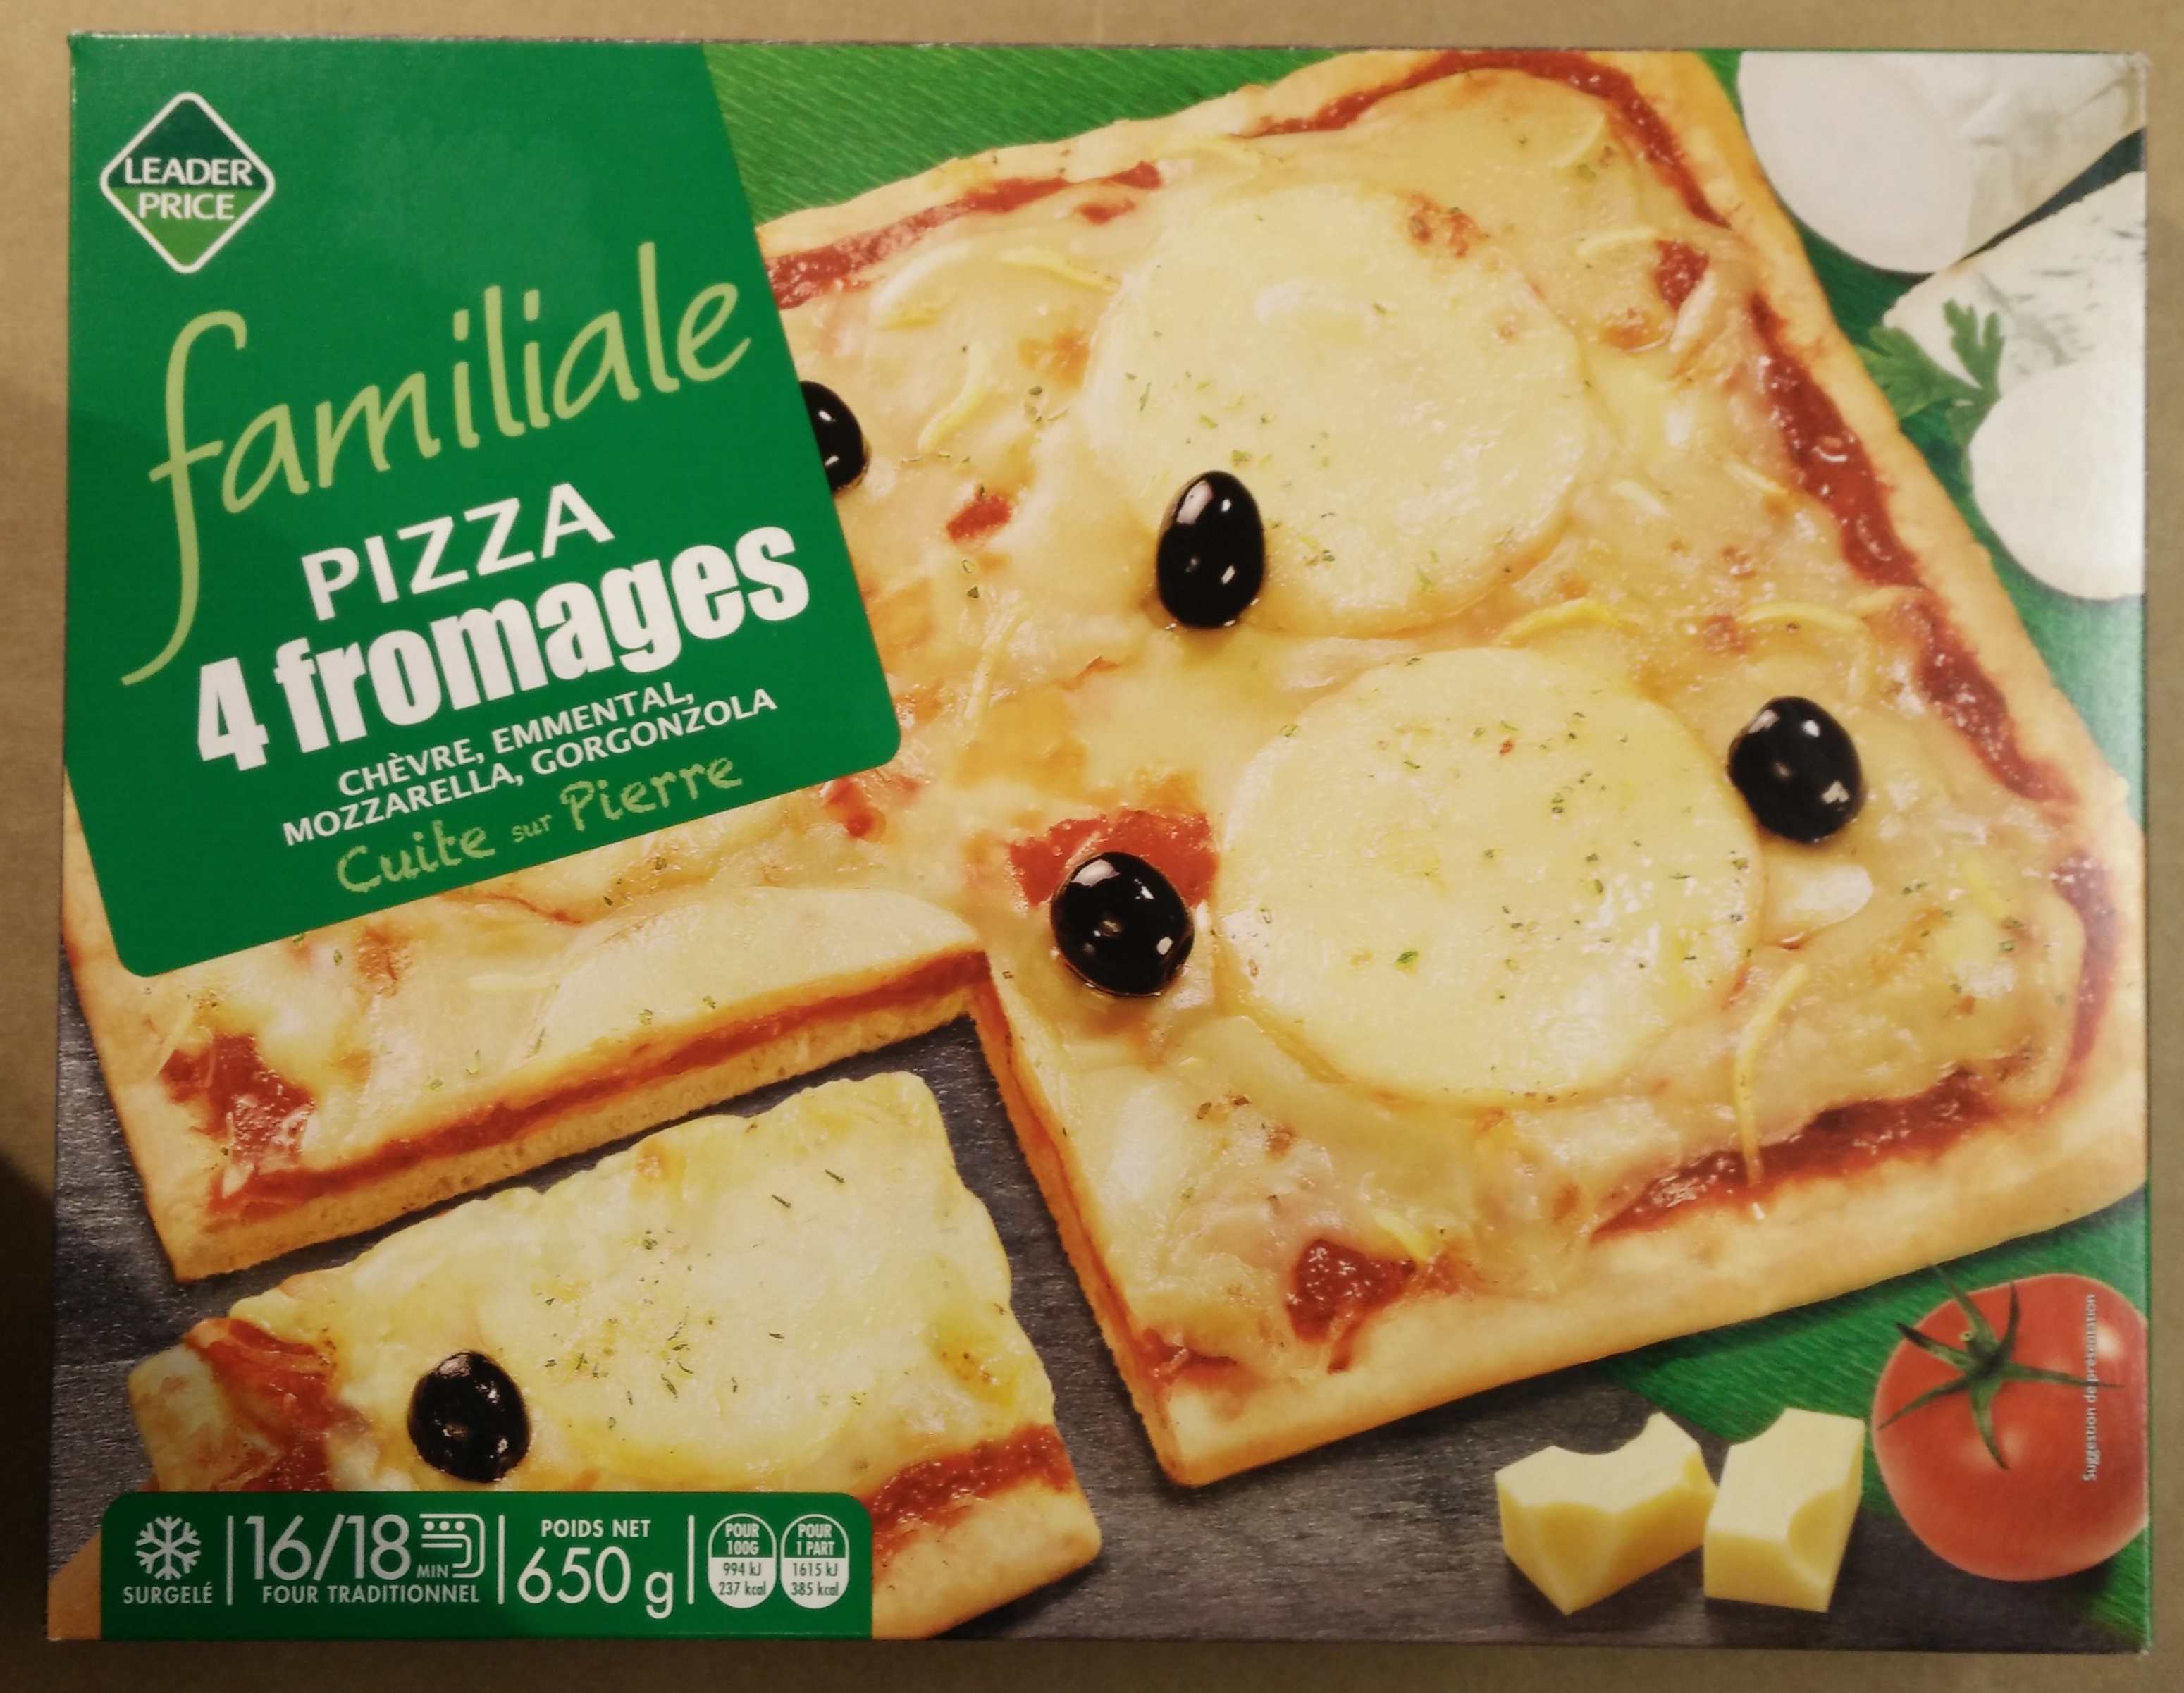 pizza 4 fromages ch vre emmental mozzarella gorgonzola leader price 650 g. Black Bedroom Furniture Sets. Home Design Ideas